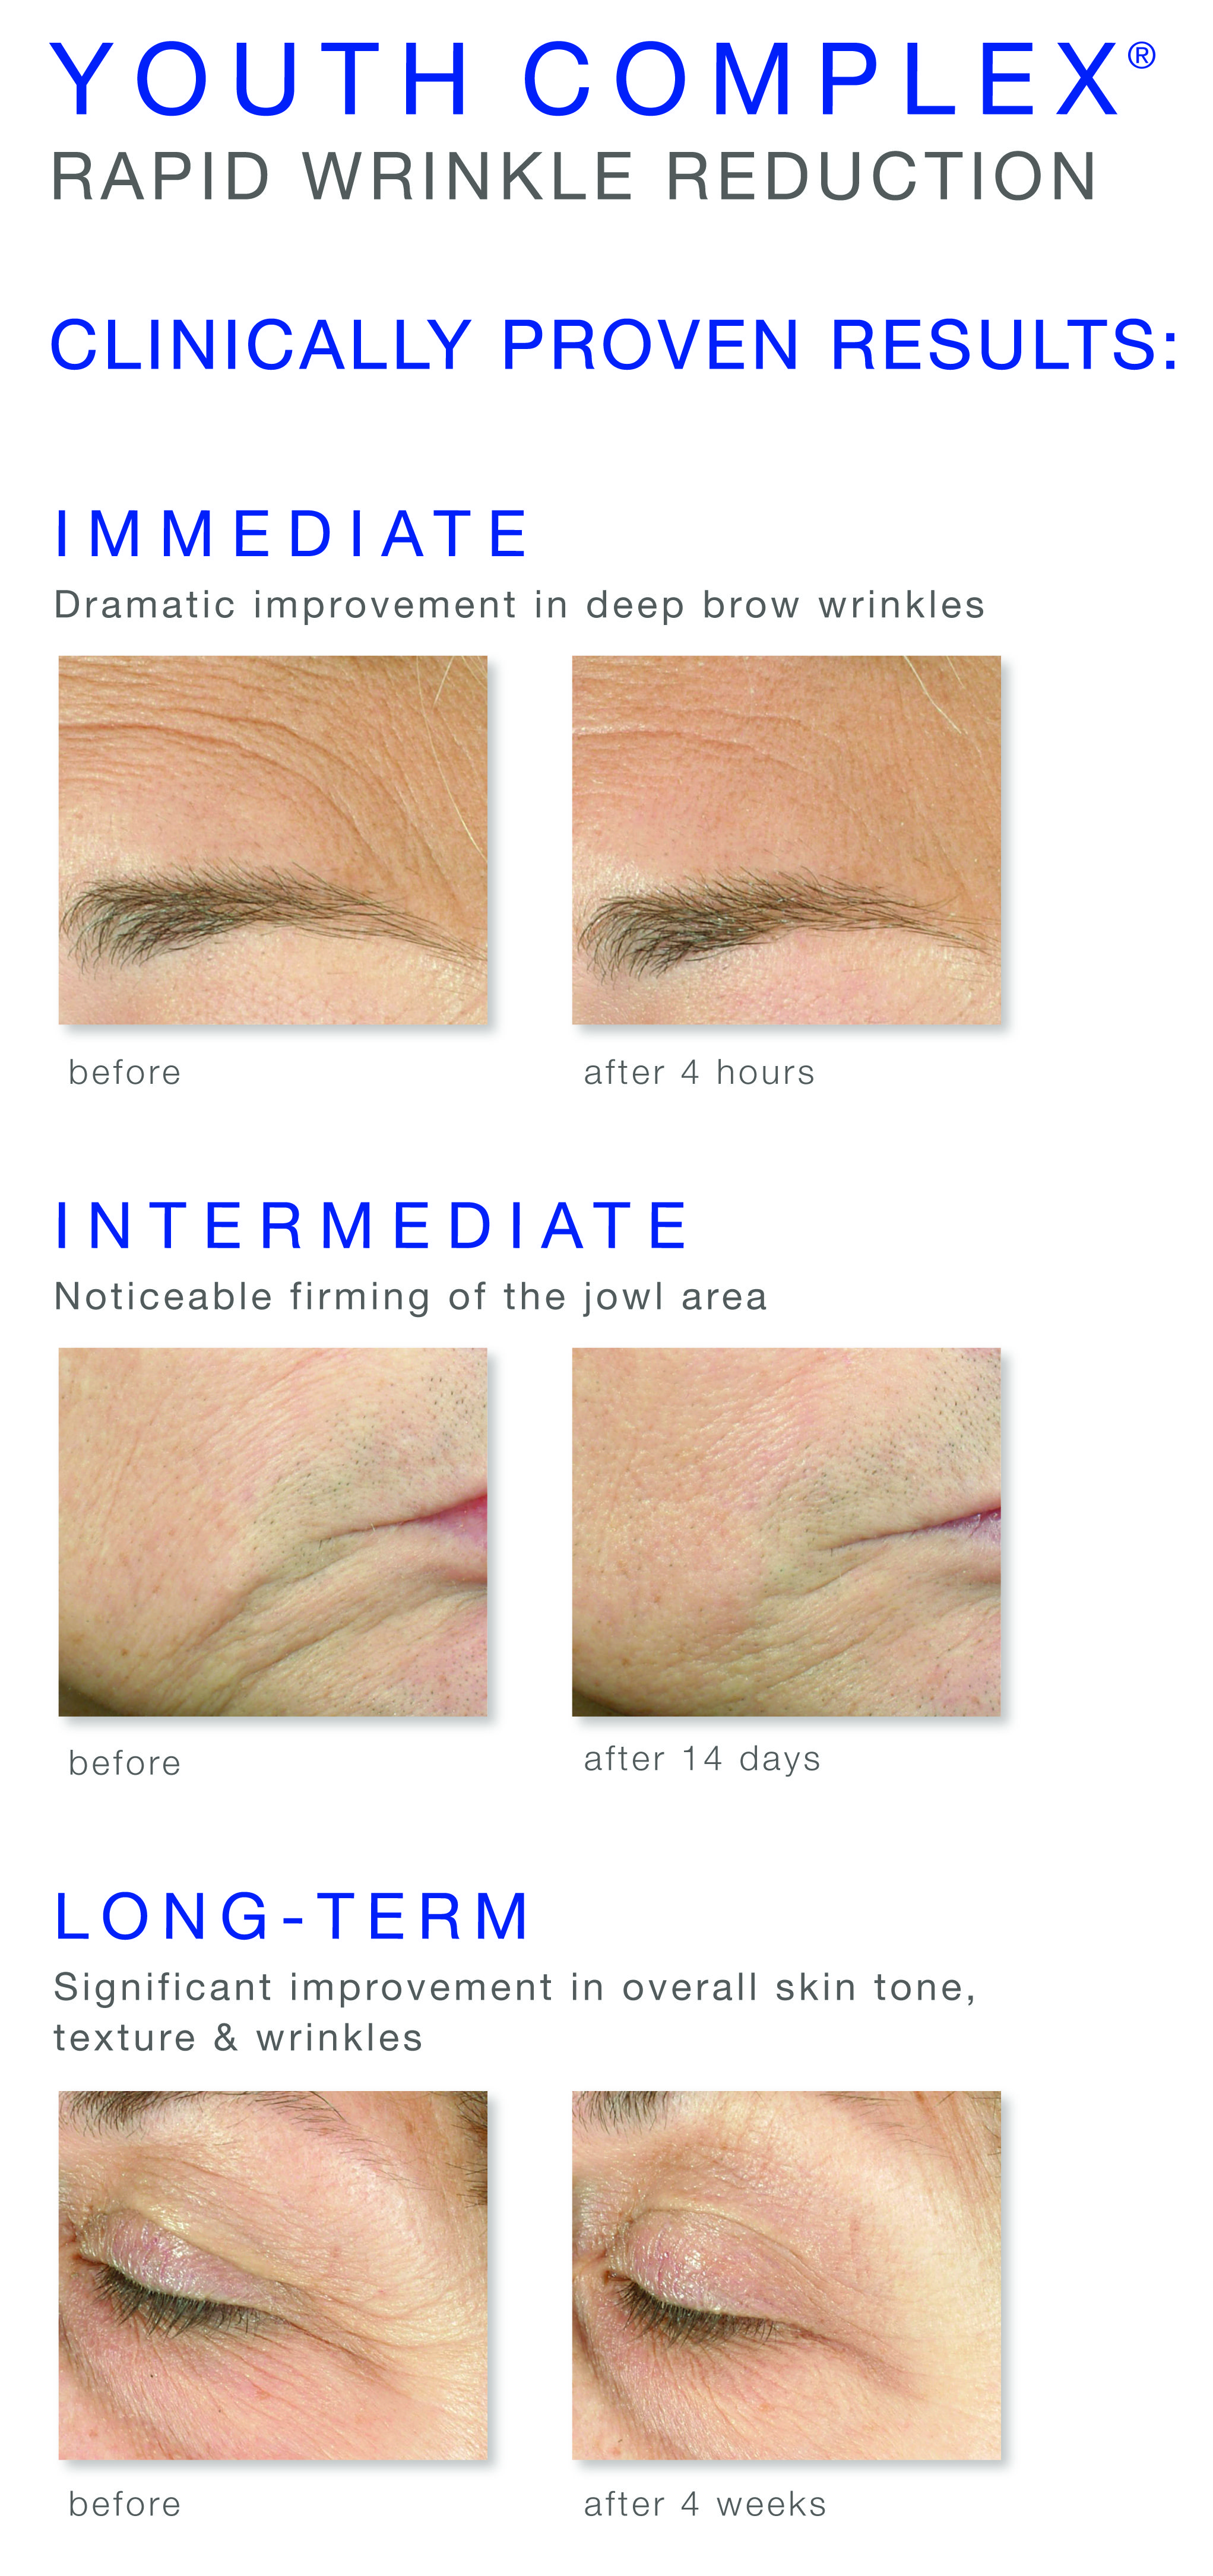 Is Clinical Youth Complex Rapid Wrinkle Reduction Wrinkle Reduction Brow Wrinkles Skin Science